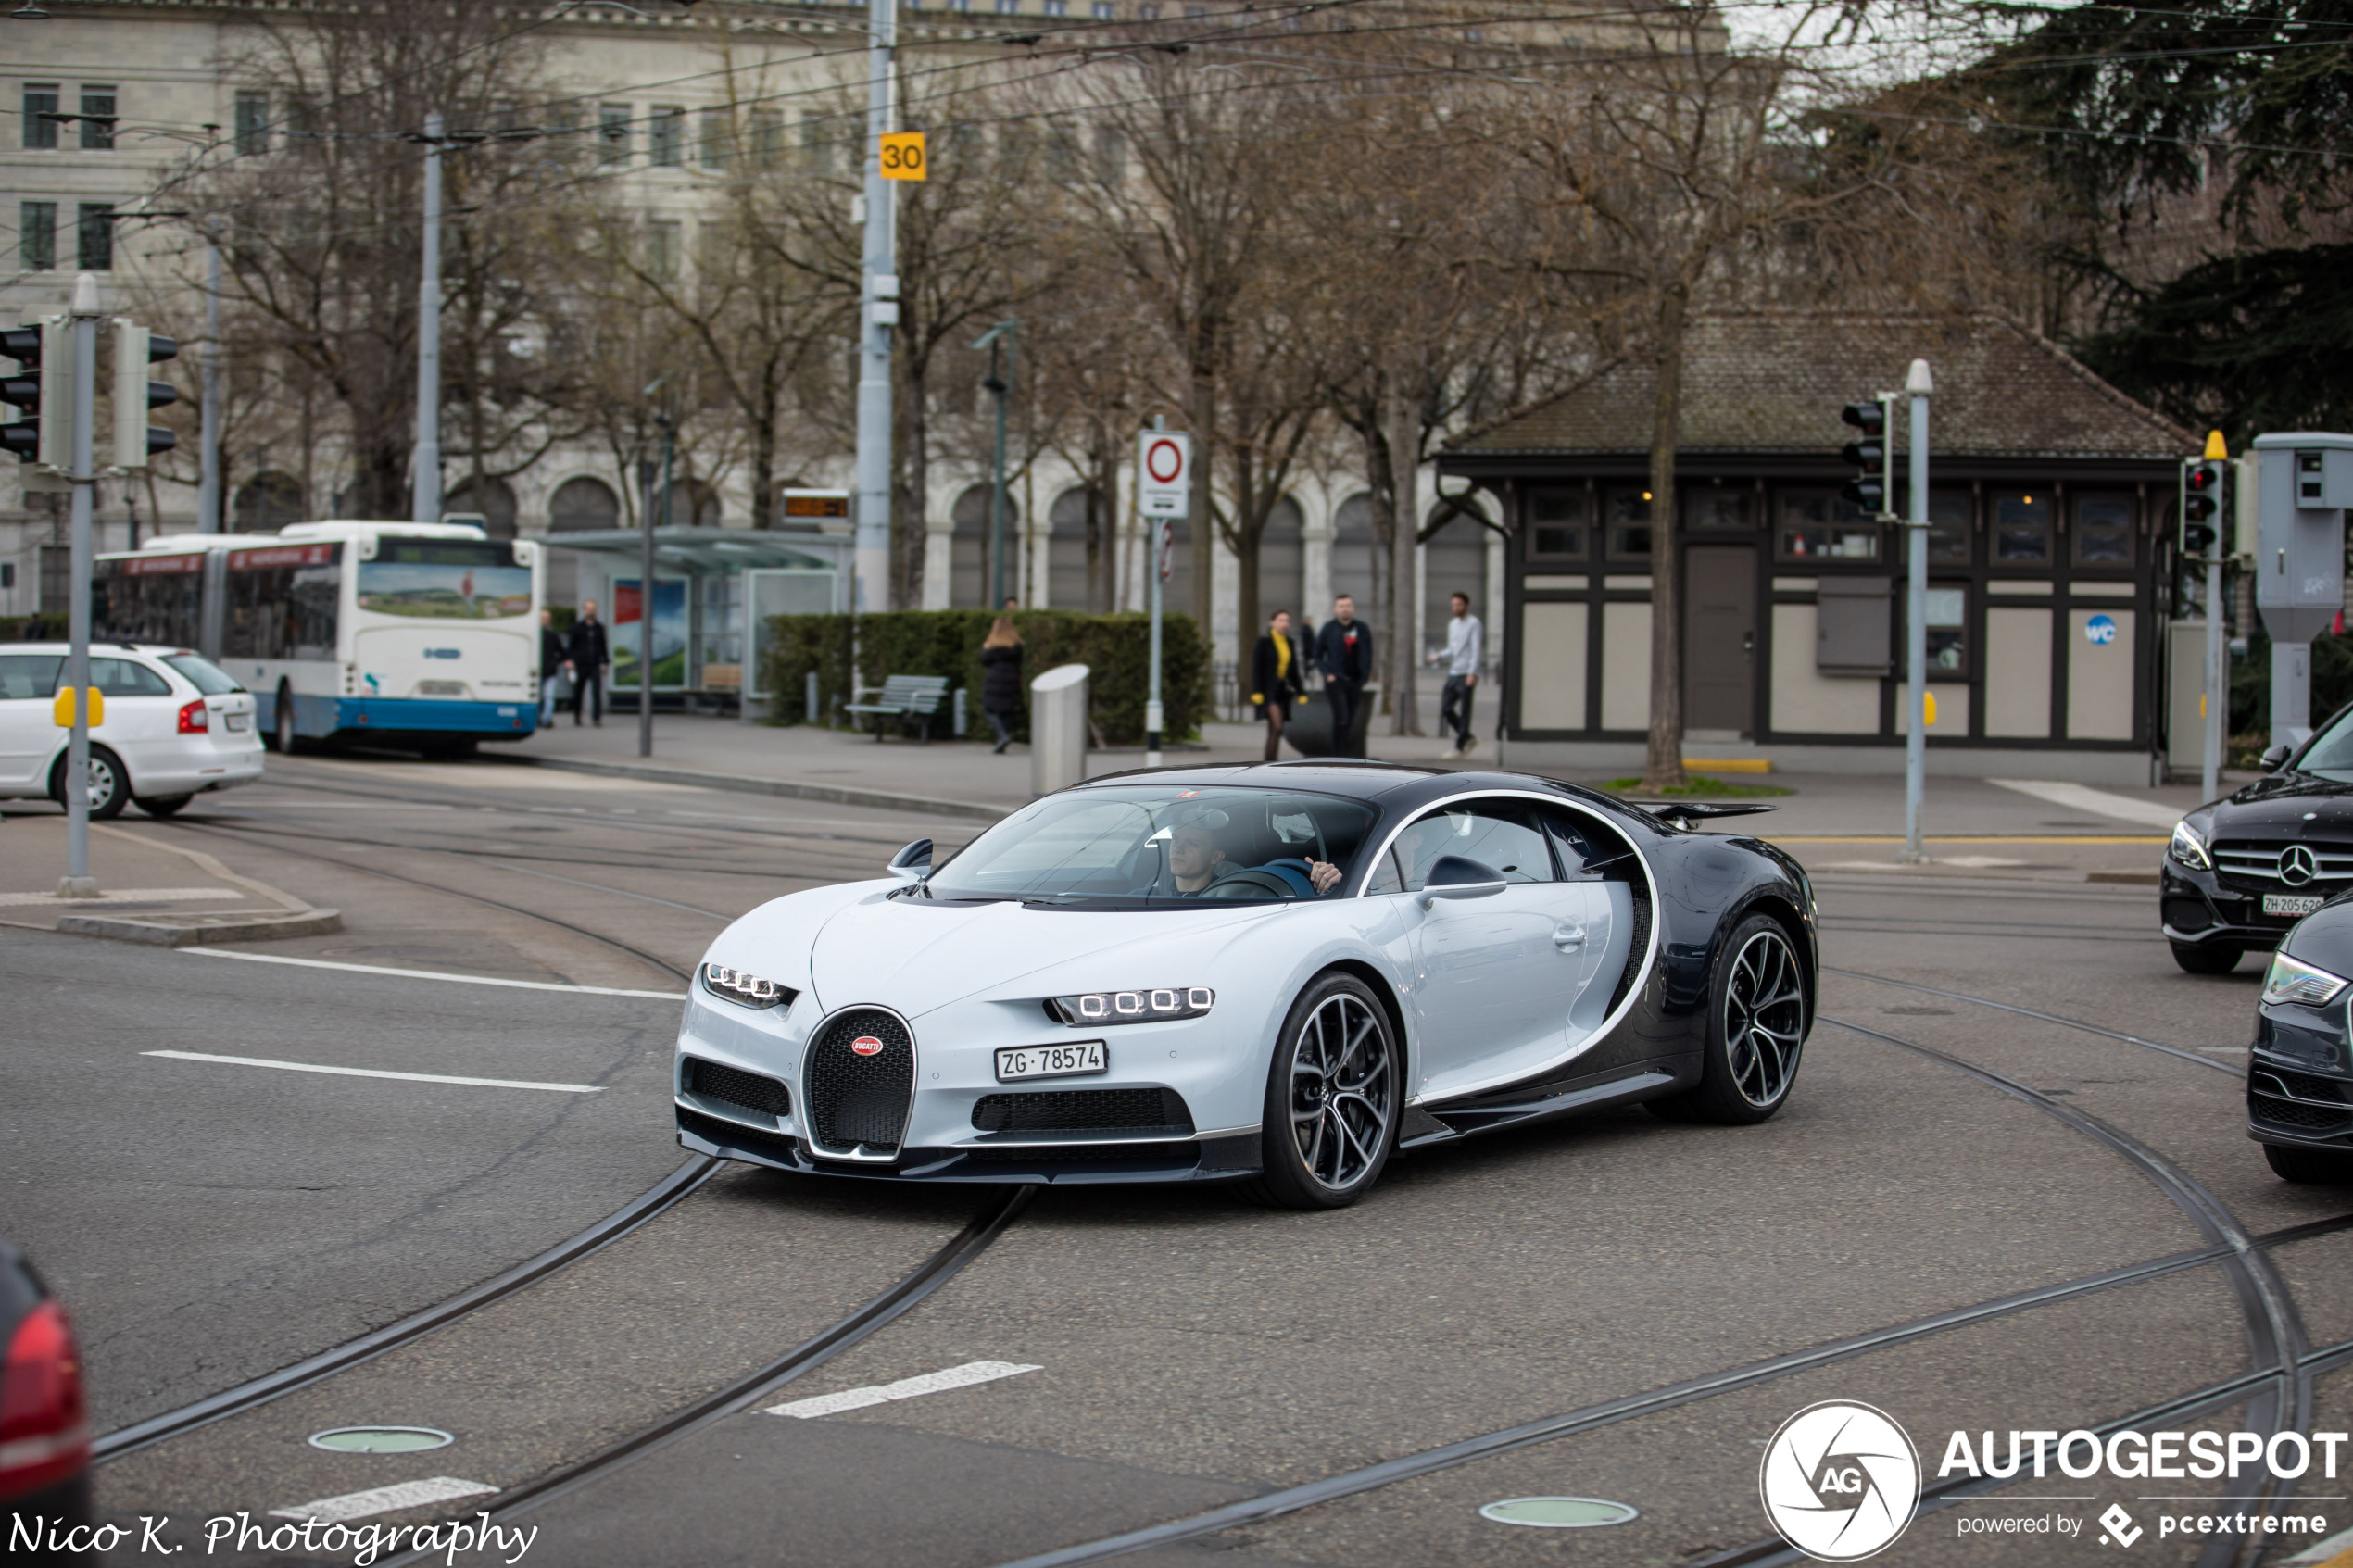 Spotted: Bugatti Chiron takes a stroll through Zurich.